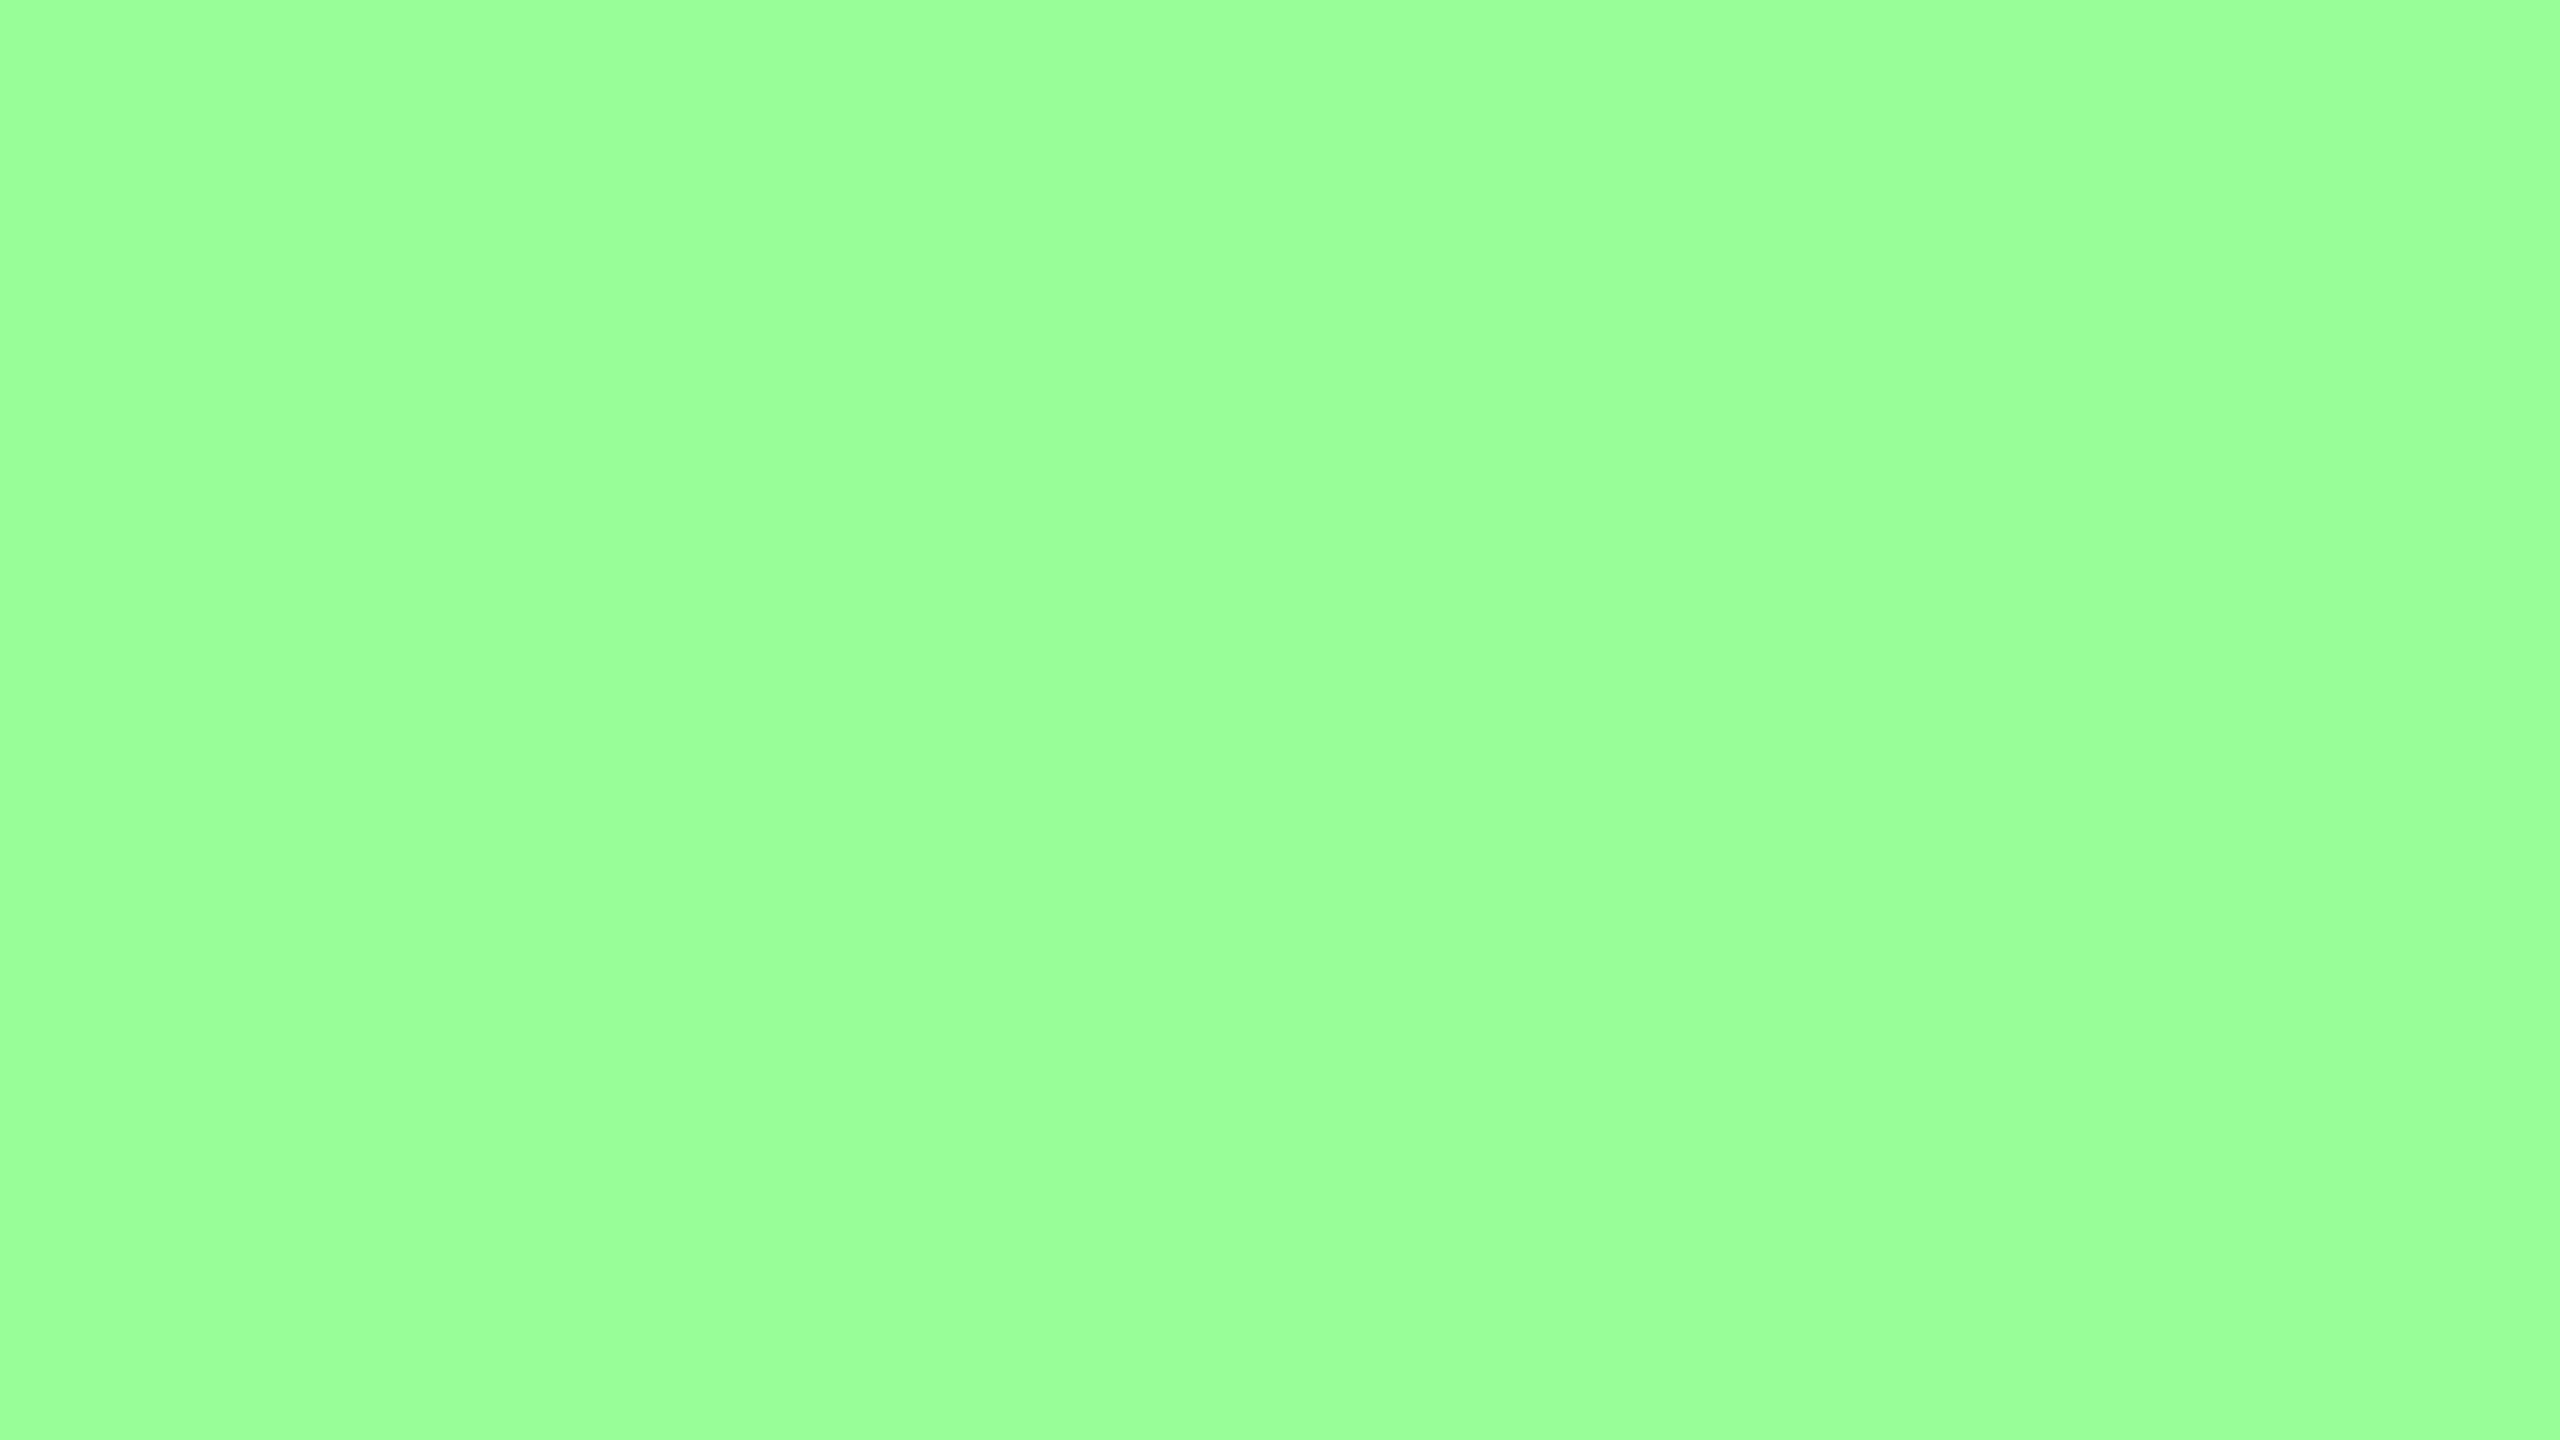 2560x1440 Mint Green Solid Color Background